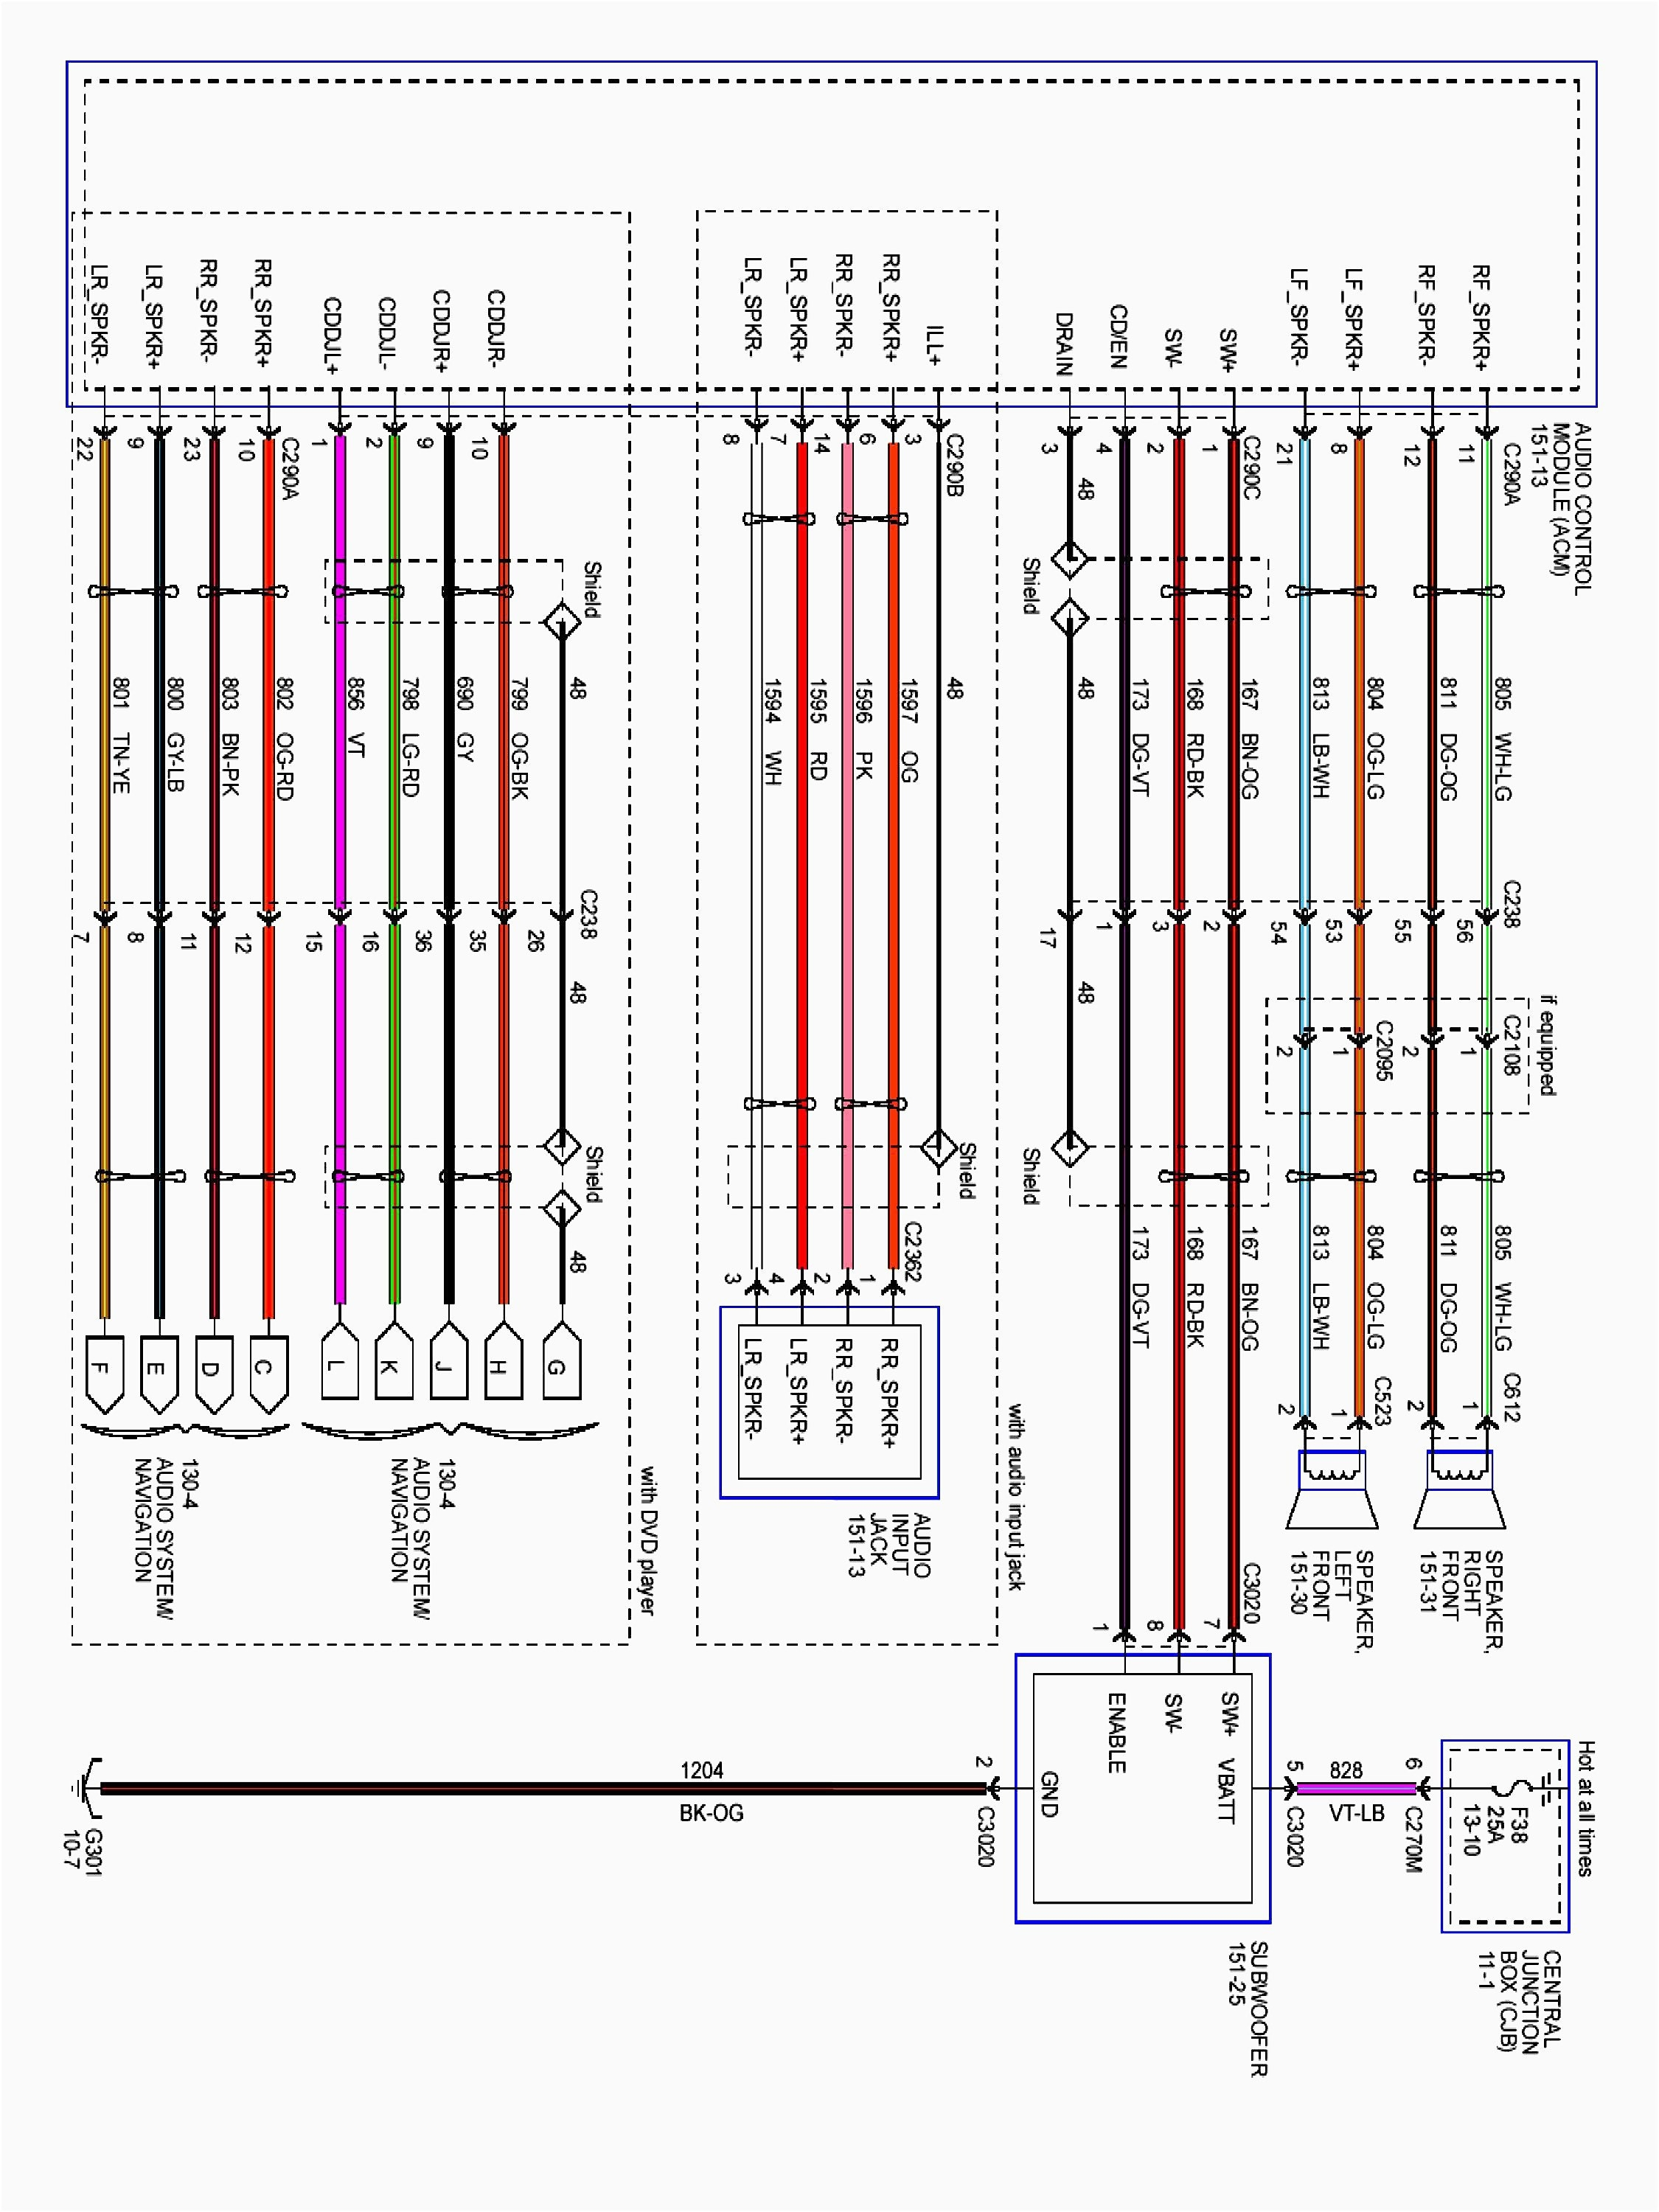 2004 Ford F150 Cylinder Diagram Wiring Services Freestar Firing Order Transmission Parts U2022 Rh Helens Page De